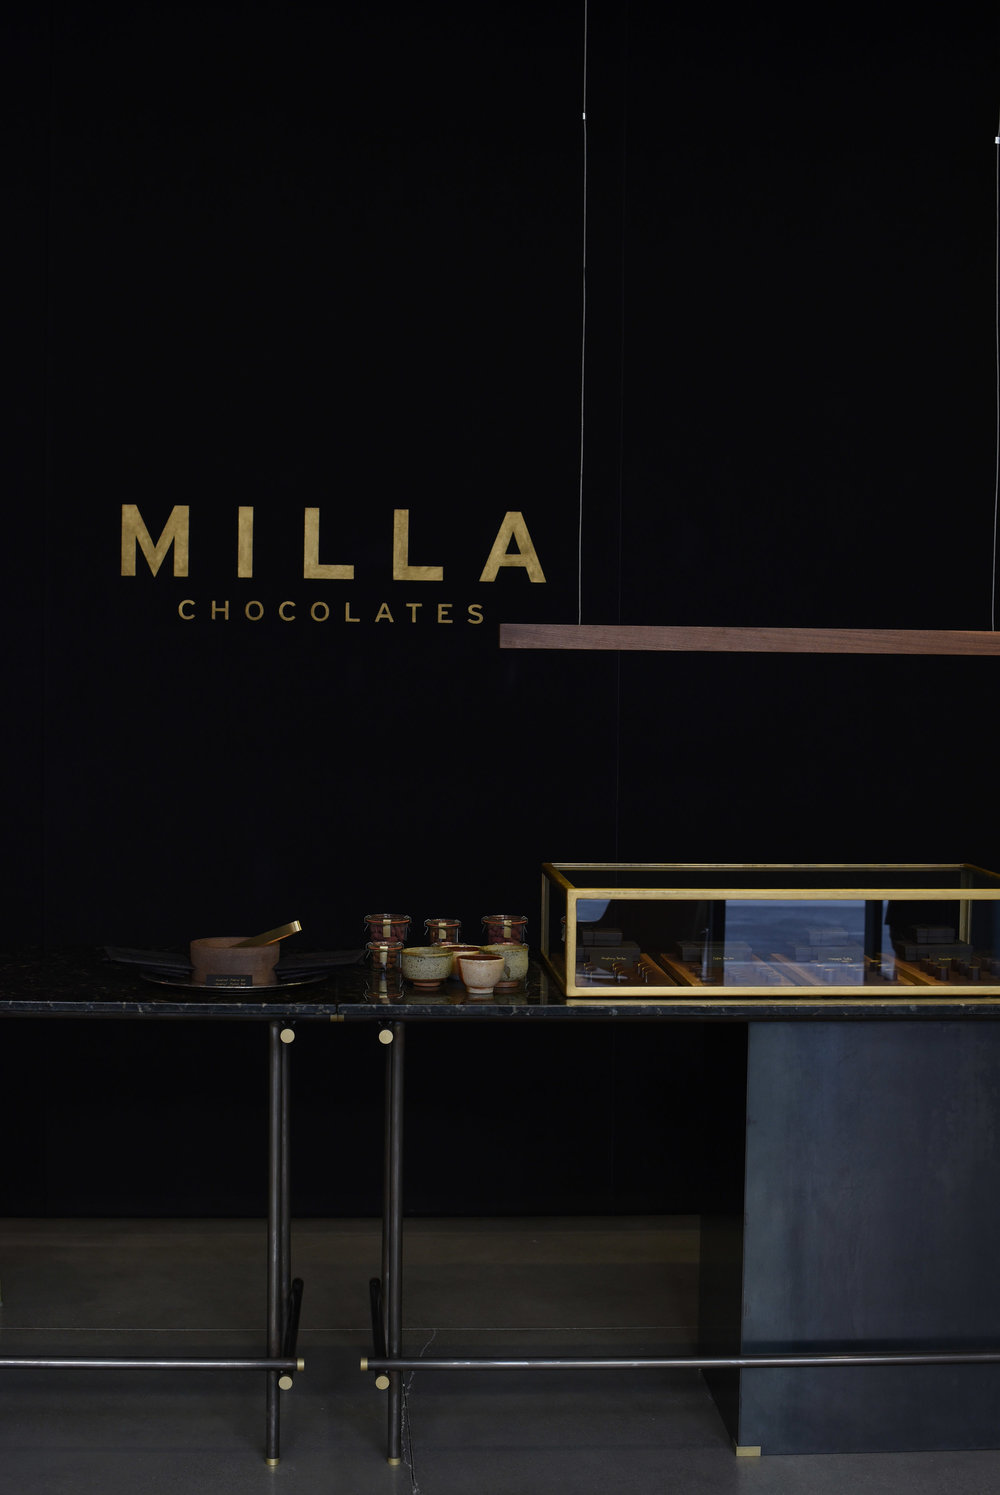 MILLA Chocolates